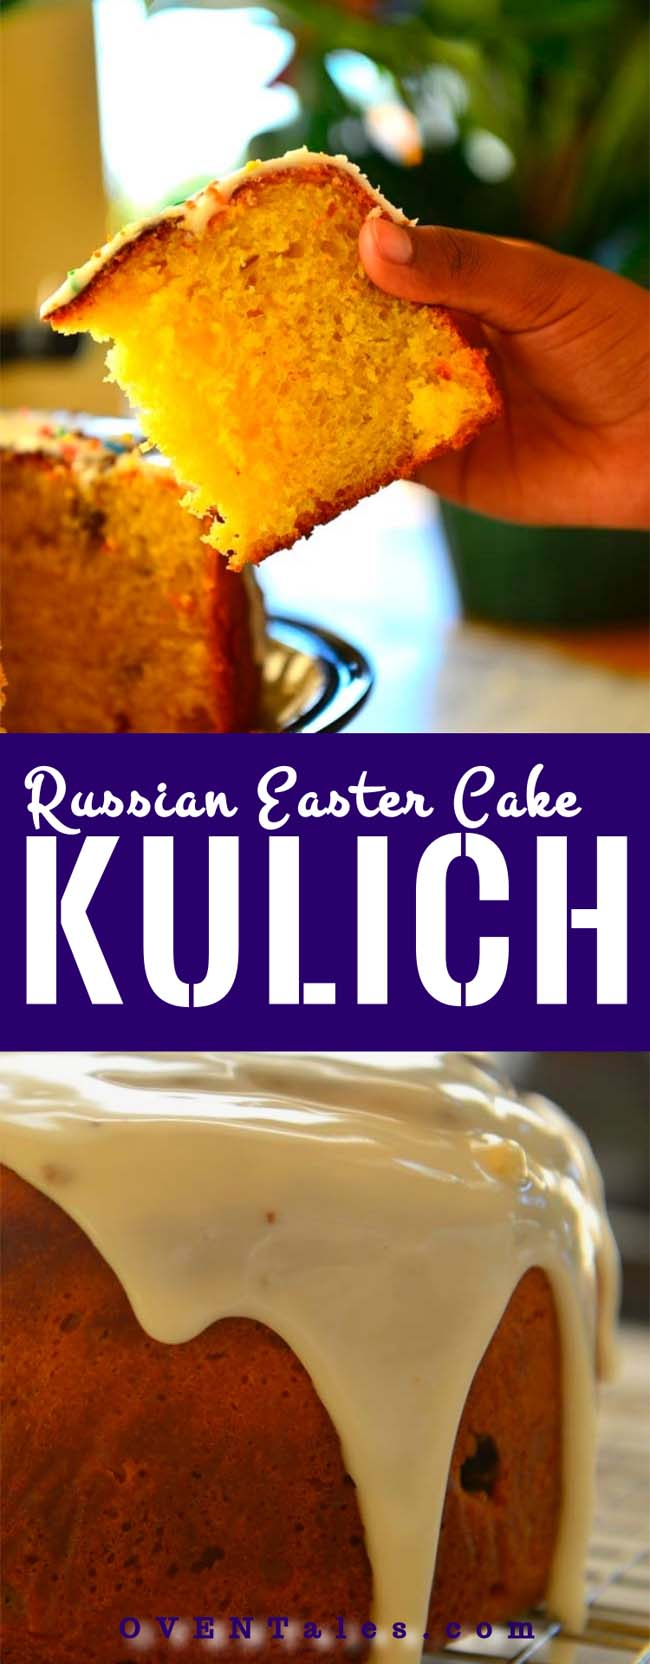 Kulich - The Russian  Easter Cake